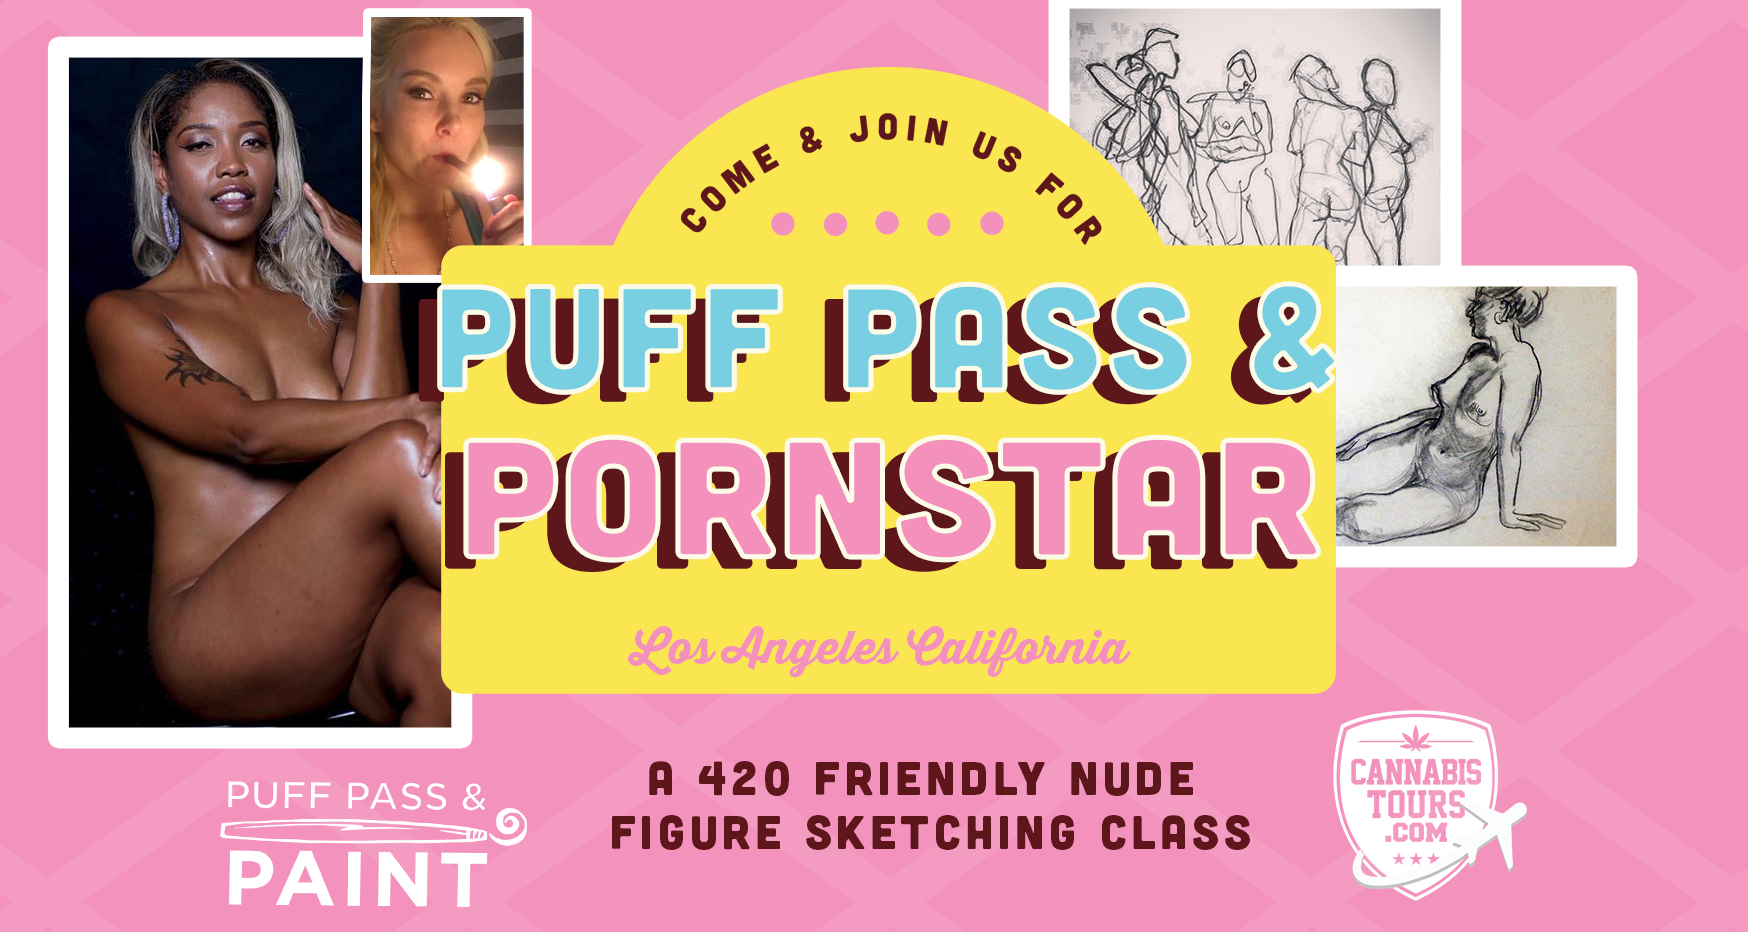 Puff Pass & Porn Star - a nude figure drawing class